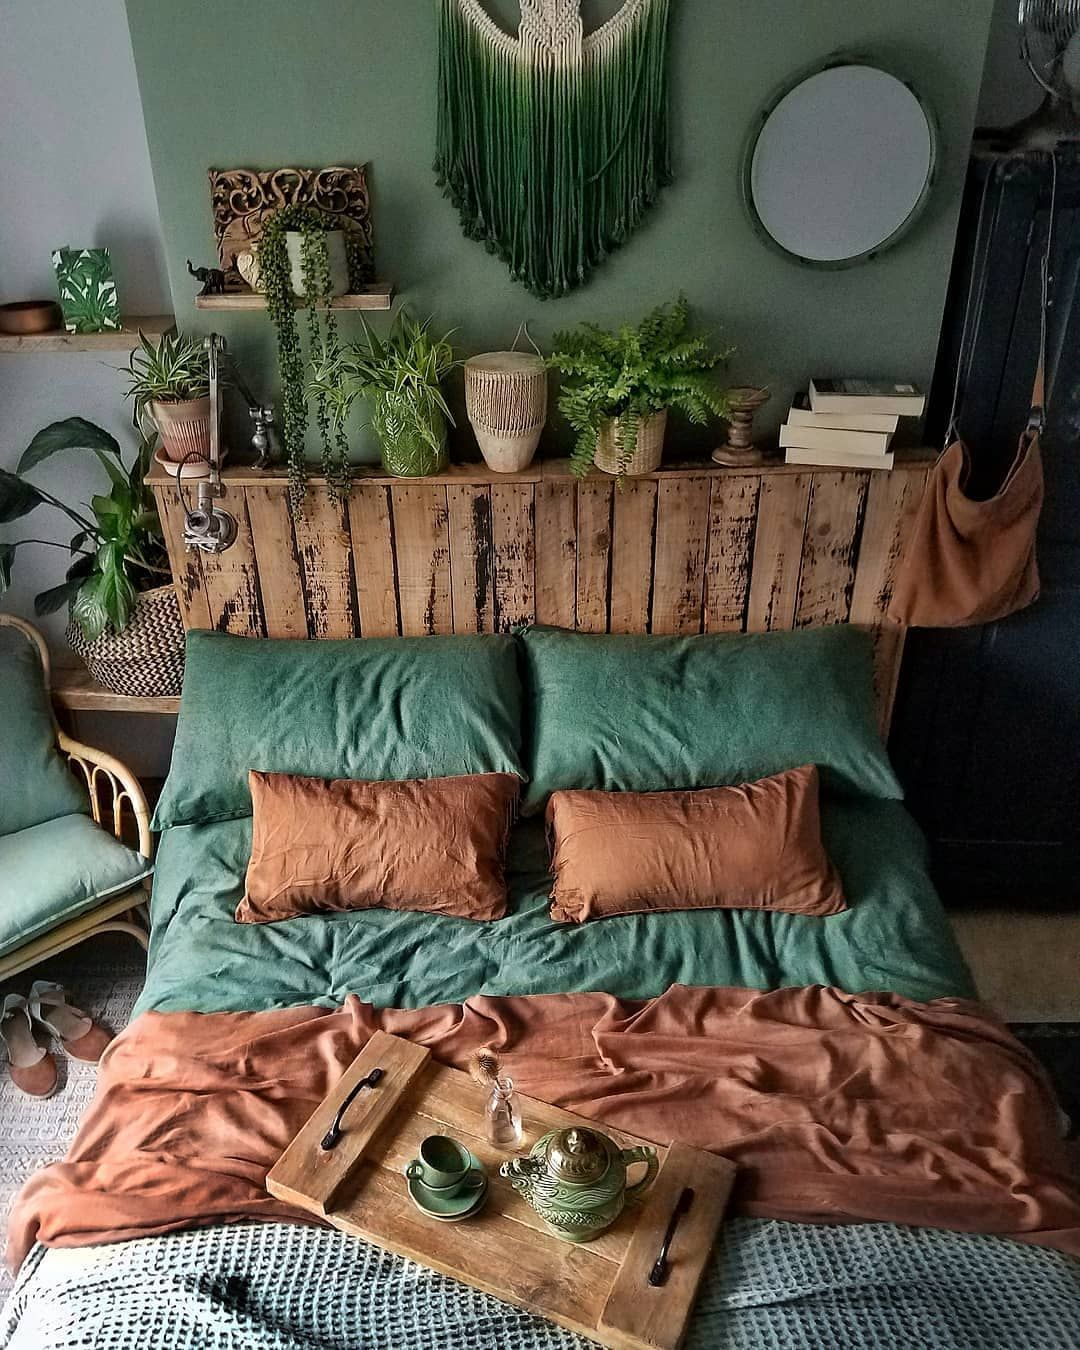 HAUS THERAPIE on Instagram Home sweet home Nothing beats a cozy bed and cuppa tea haustherapie Home by sixat21 HAUS THERAPIE on Instagram Home sweet home Nothing beats a cozy bed and cuppa tea haustherapie Home by sixat21 nbsp hellip #beats #Bed #cozy #cozy bedding tea #cuppa #Haus #haustherapie #Home #Instagram #sixat21